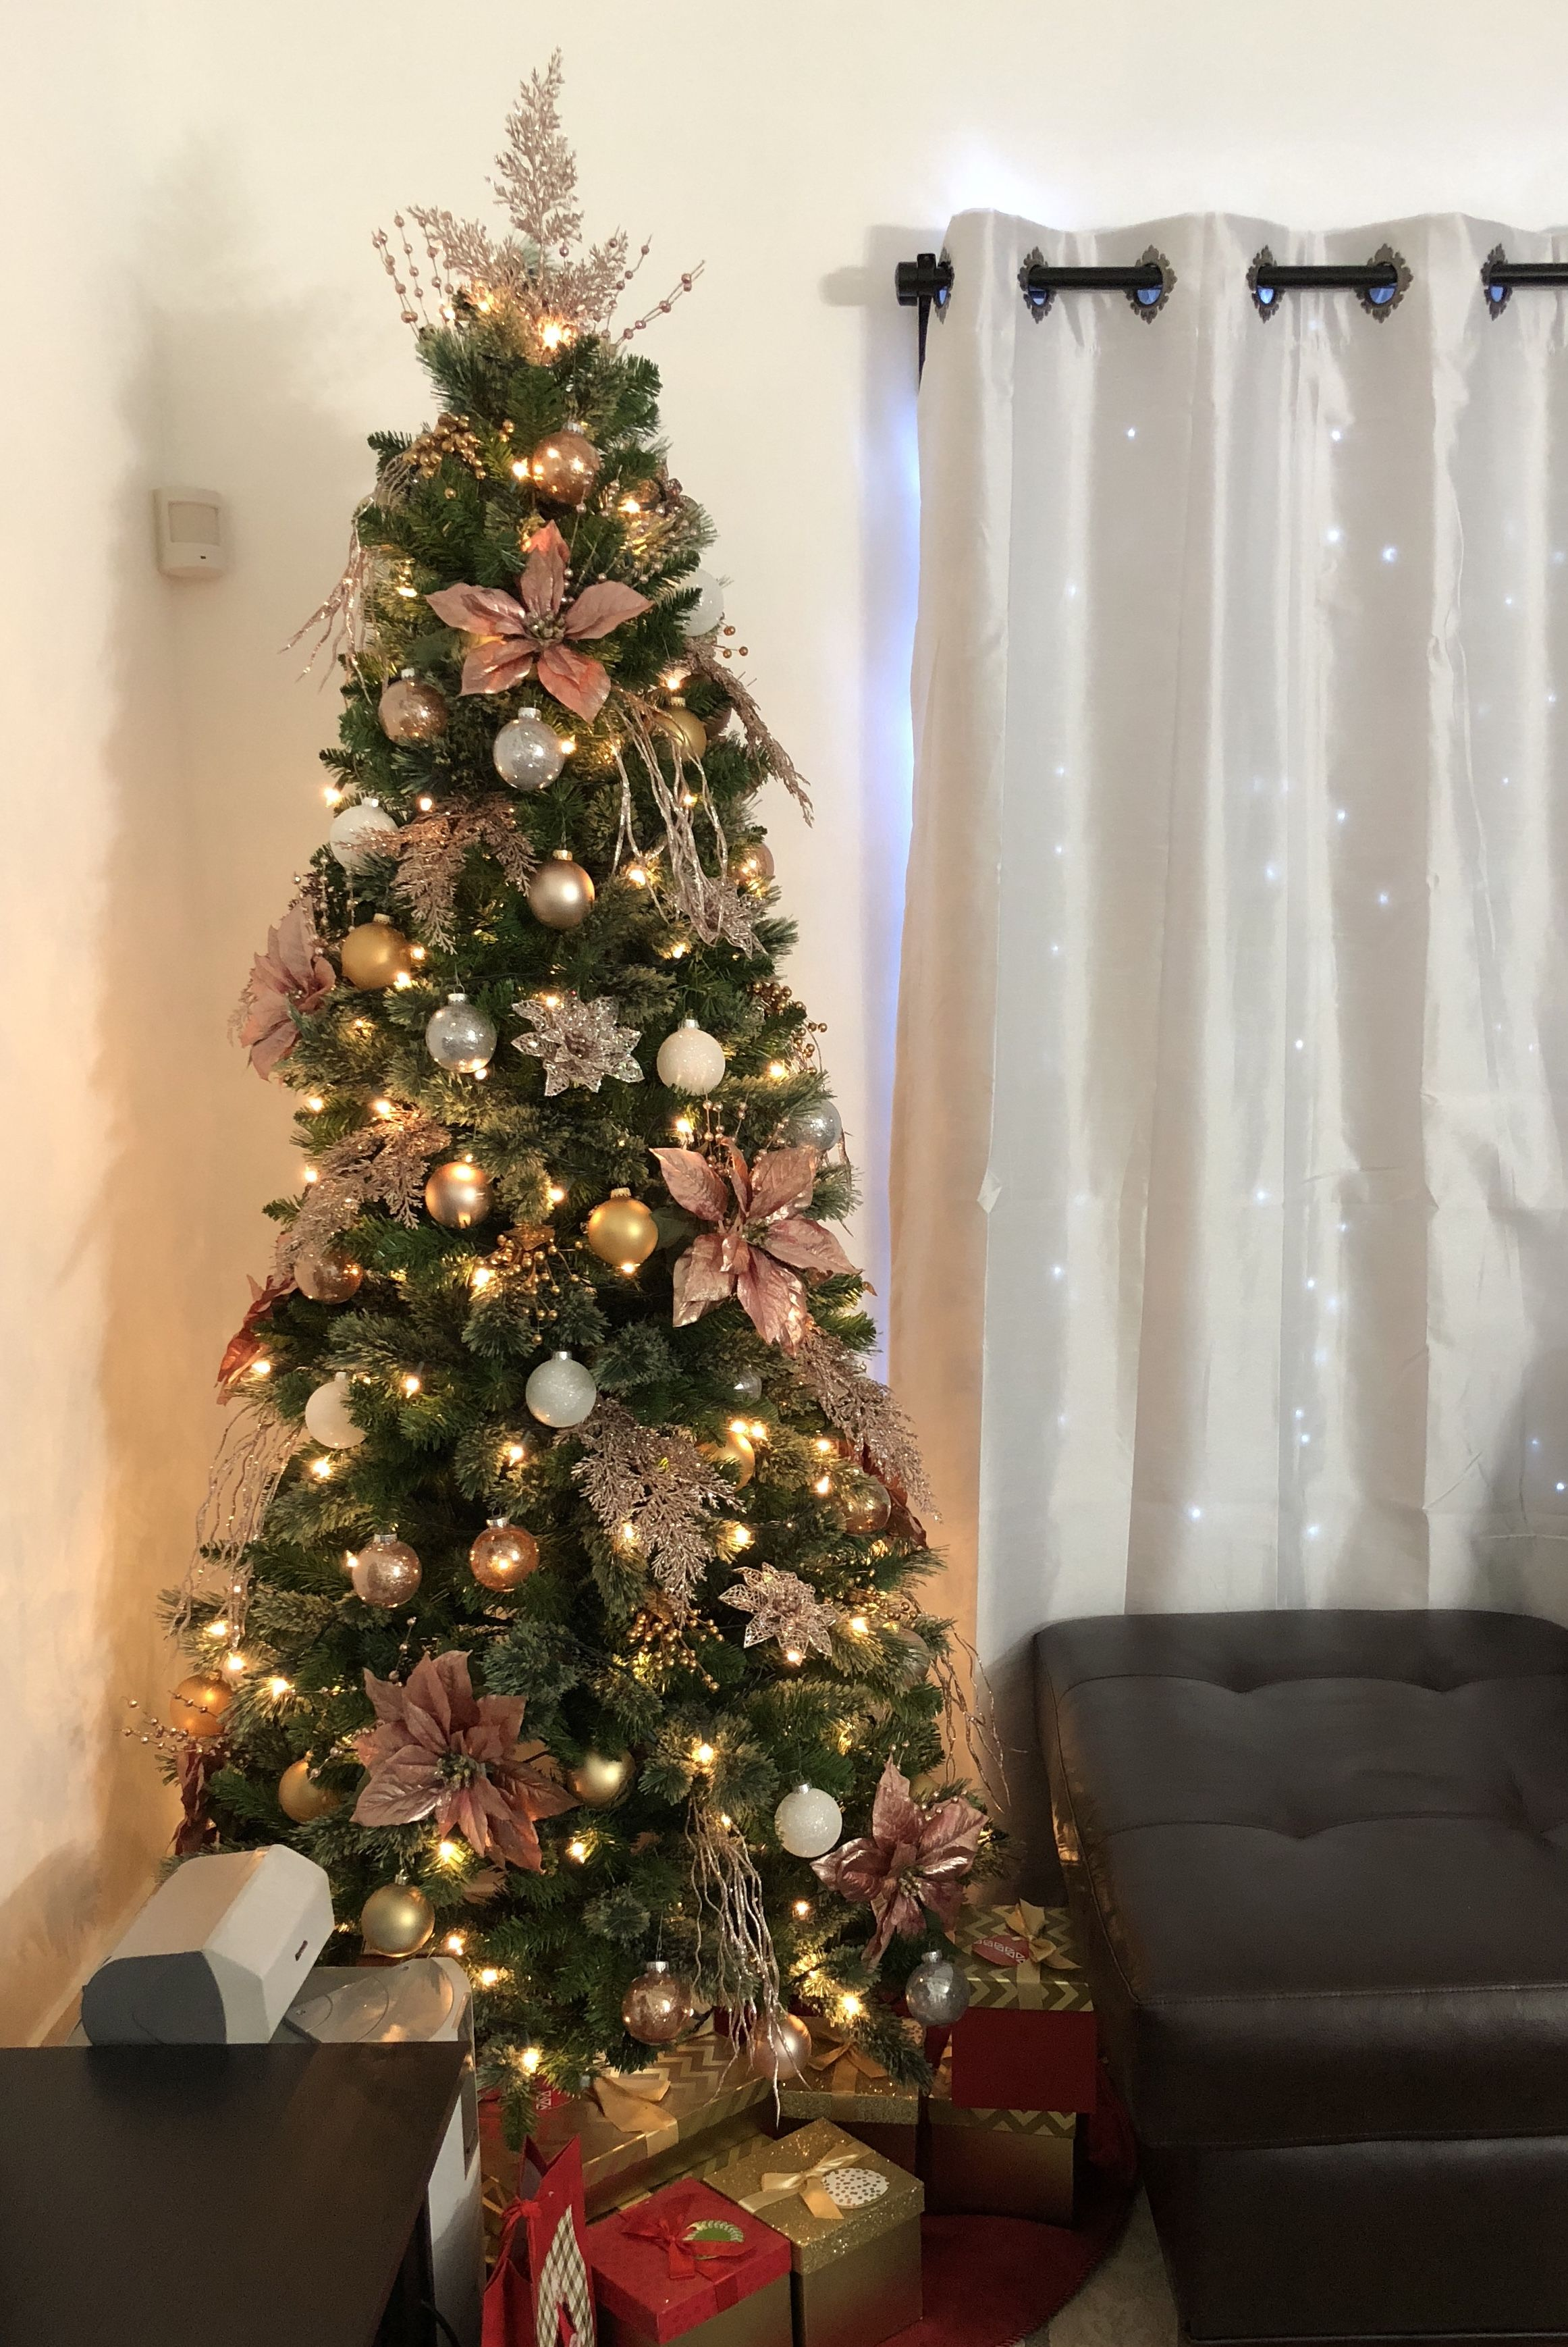 2017 Rosegold Christmas Tree Decoration | Christmas tree ...